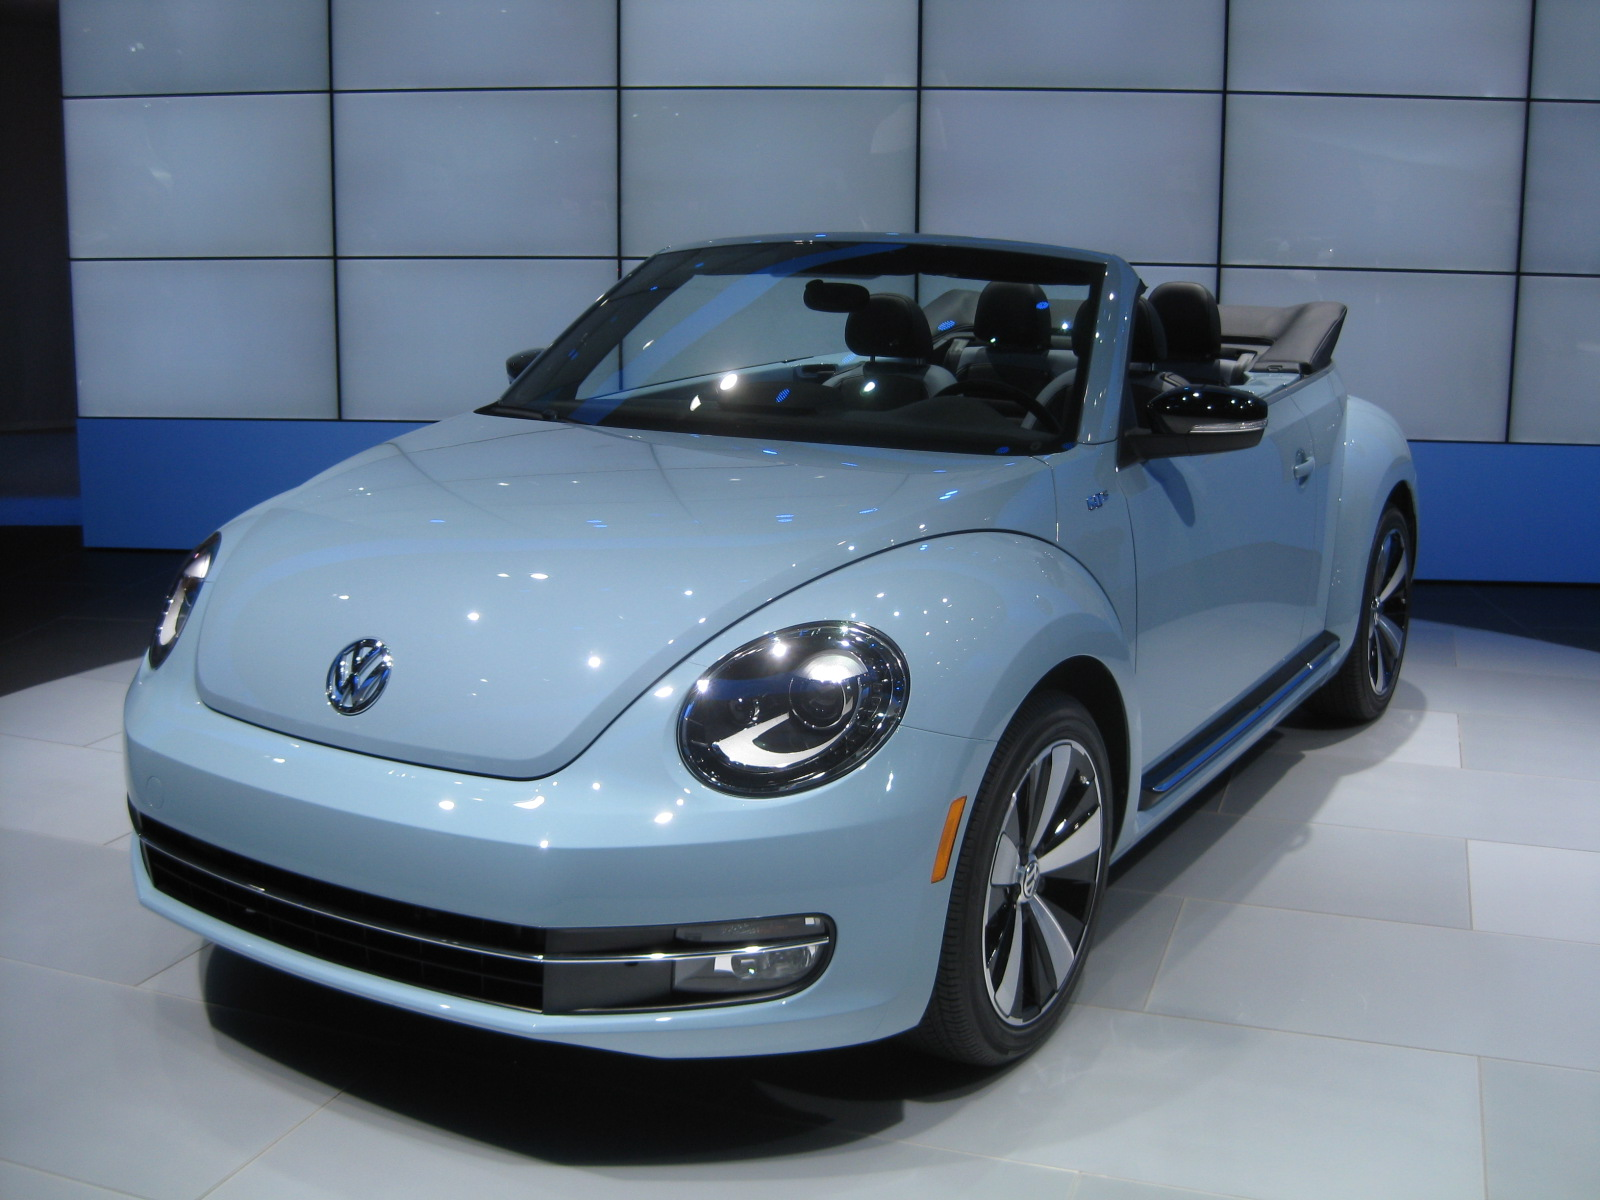 volkswagen dune images with v concept convertible vw wallpaper mounted skis cars beetle hd rear